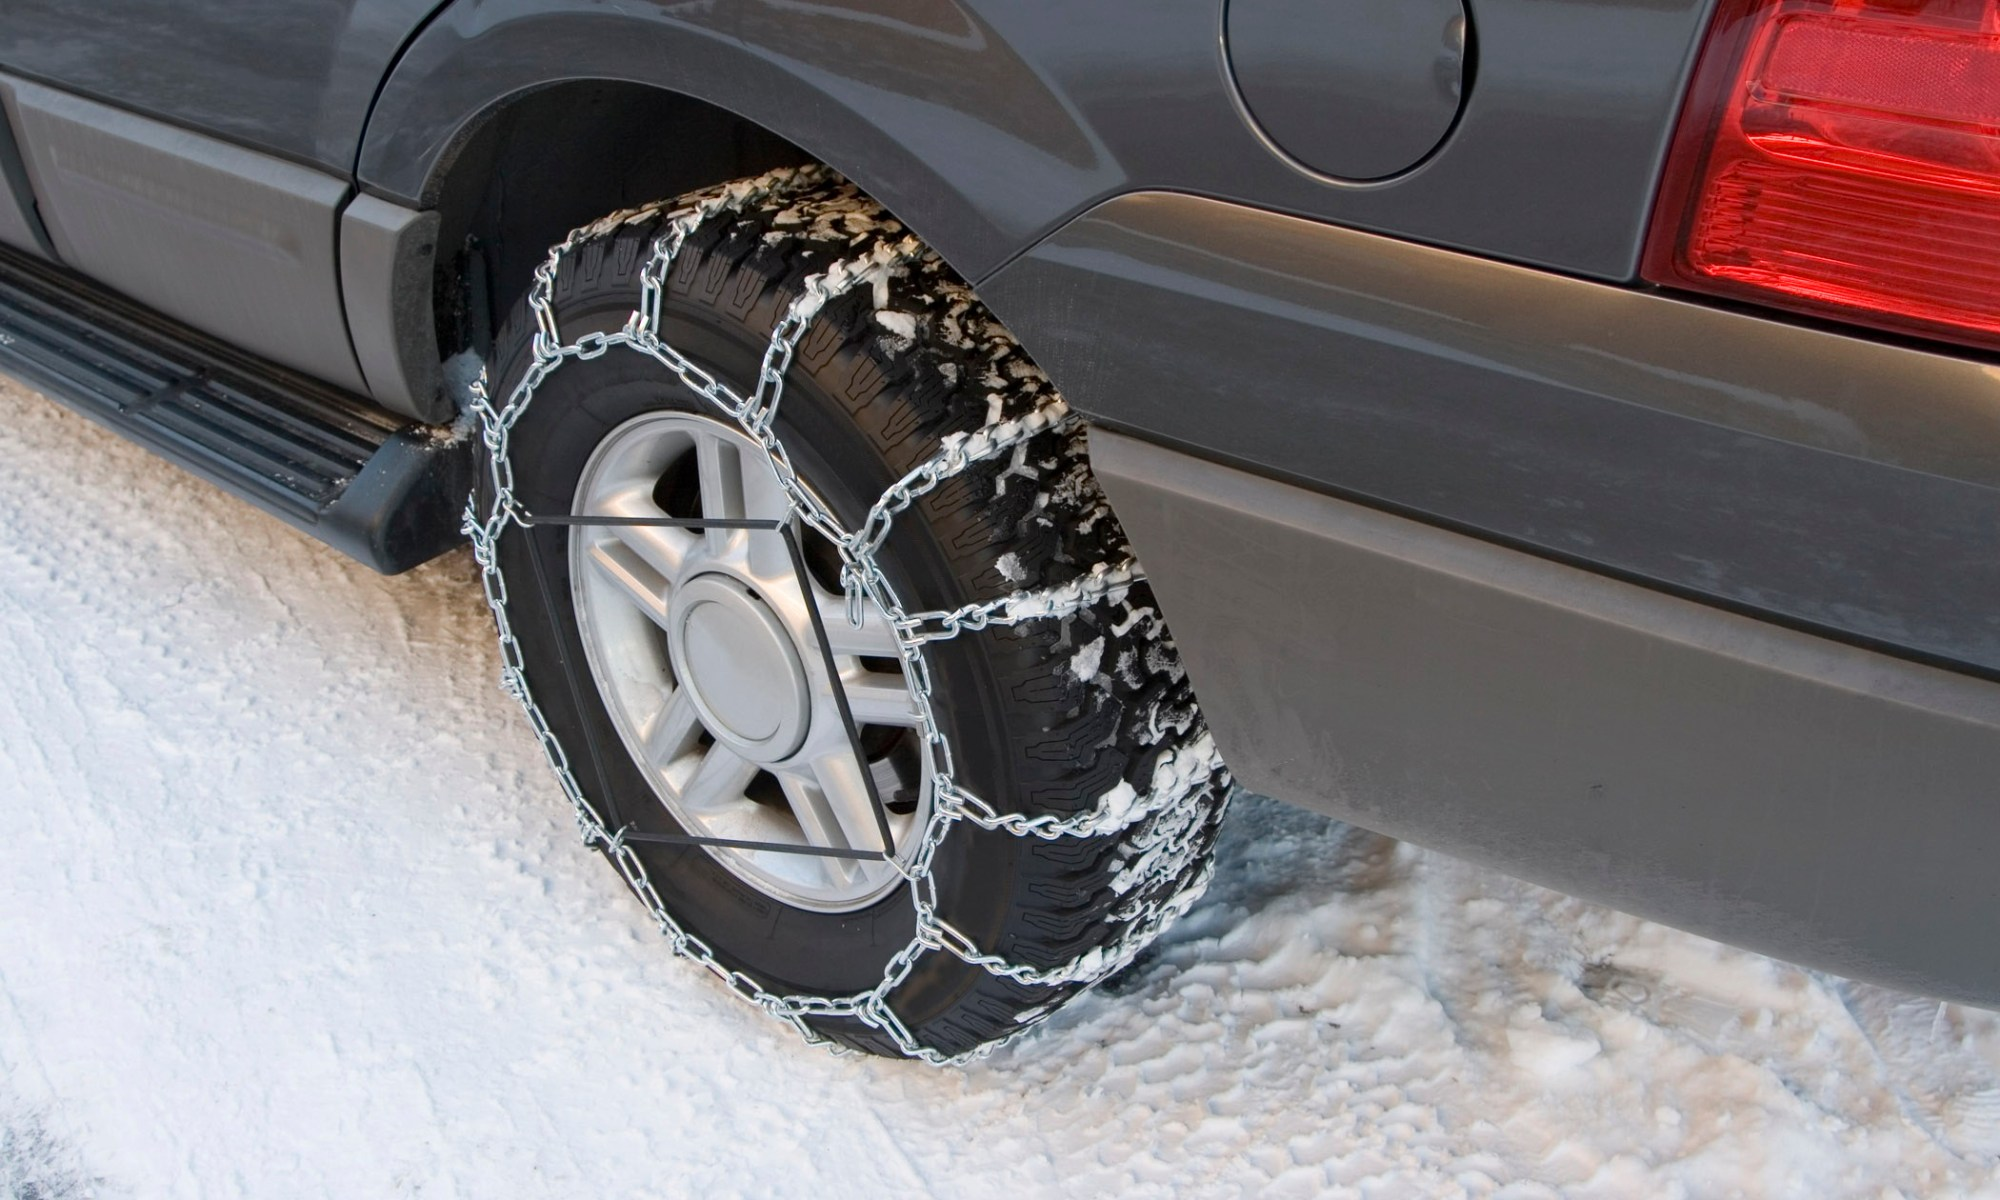 Skiers Face Winterisation and Ski Rack Charges Adding up to £179 On Car Hire Bill. Photo: iCarhireinsurance.com